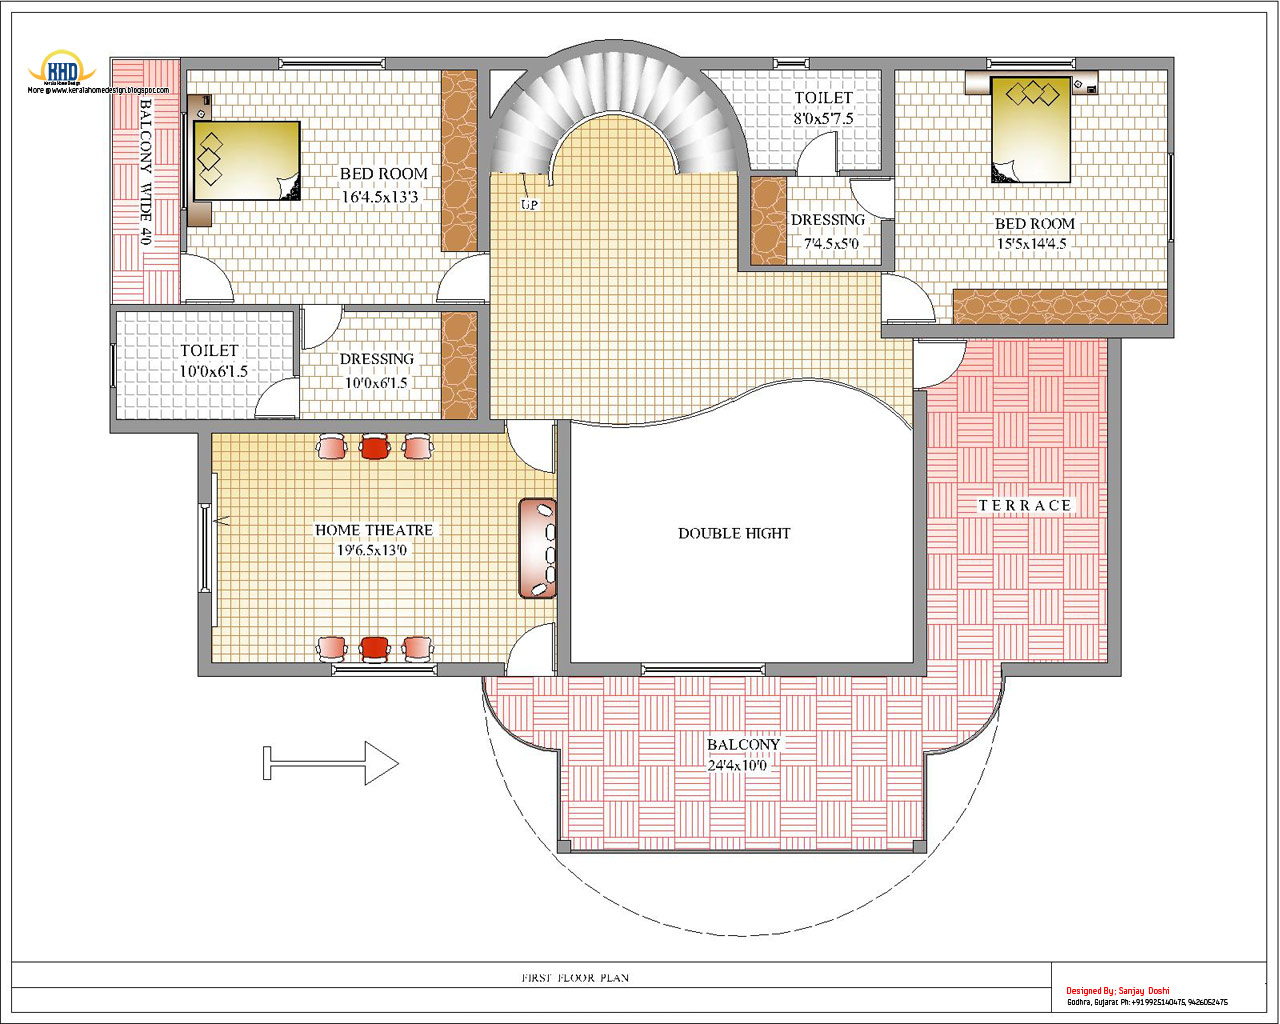 Duplex House First Floor Plan - 392 Sq M (4217 Sq. Ft.) - February